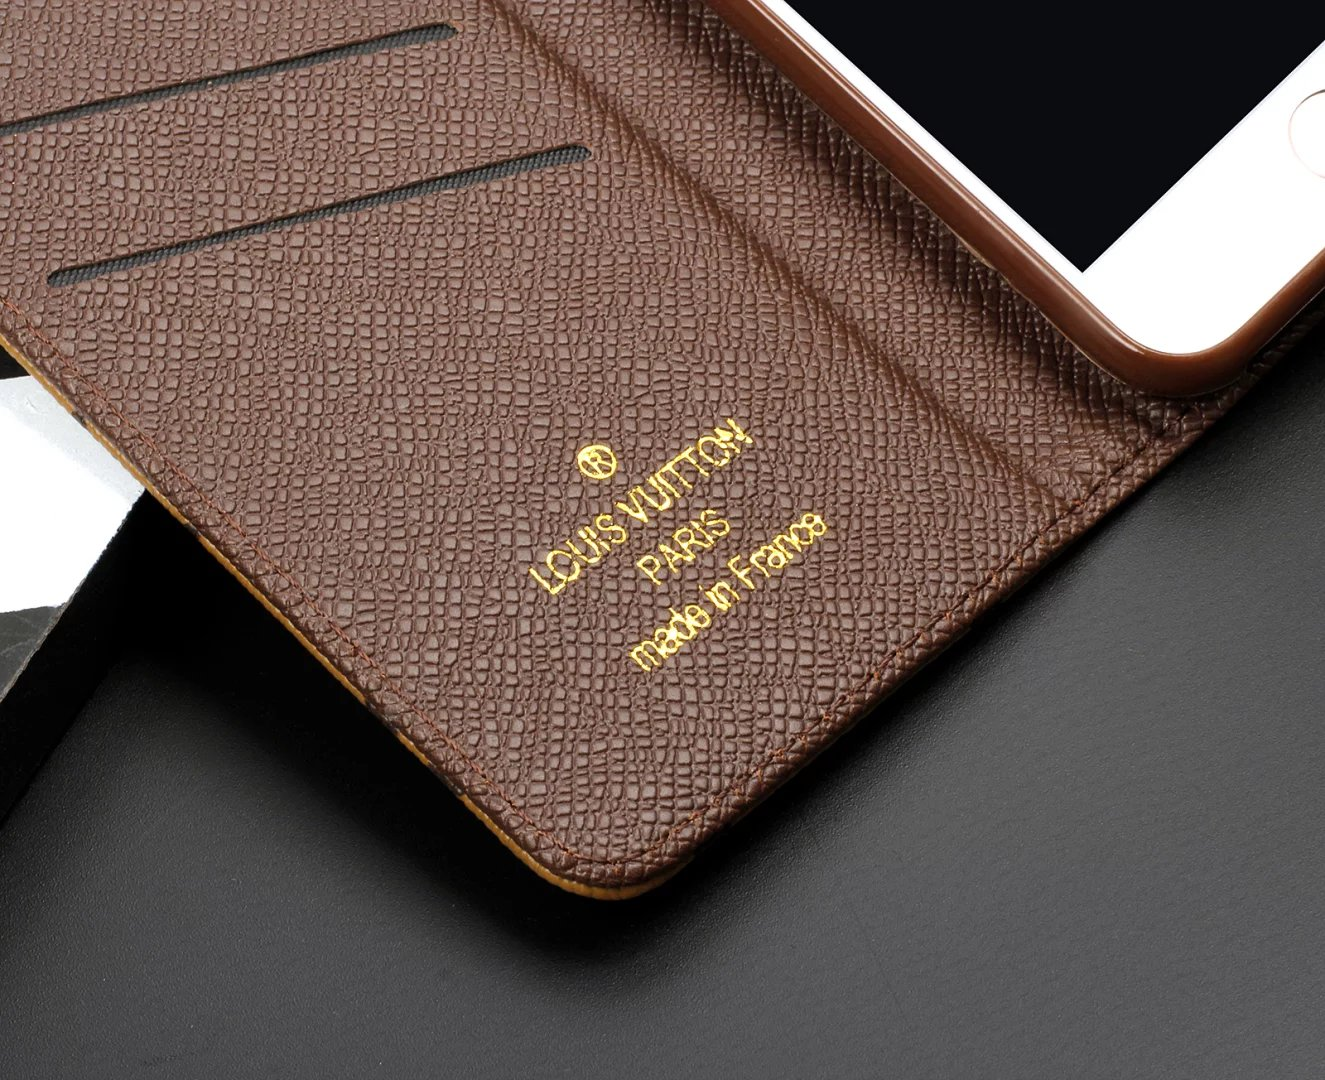 mobile phone cases iphone 8 buy iphone 8 covers Louis Vuitton iphone 8 case branded iphone 8 cases iphone 8 design phone cases iphone iphone 8 official case best phone cases iphone 8 cases and covers